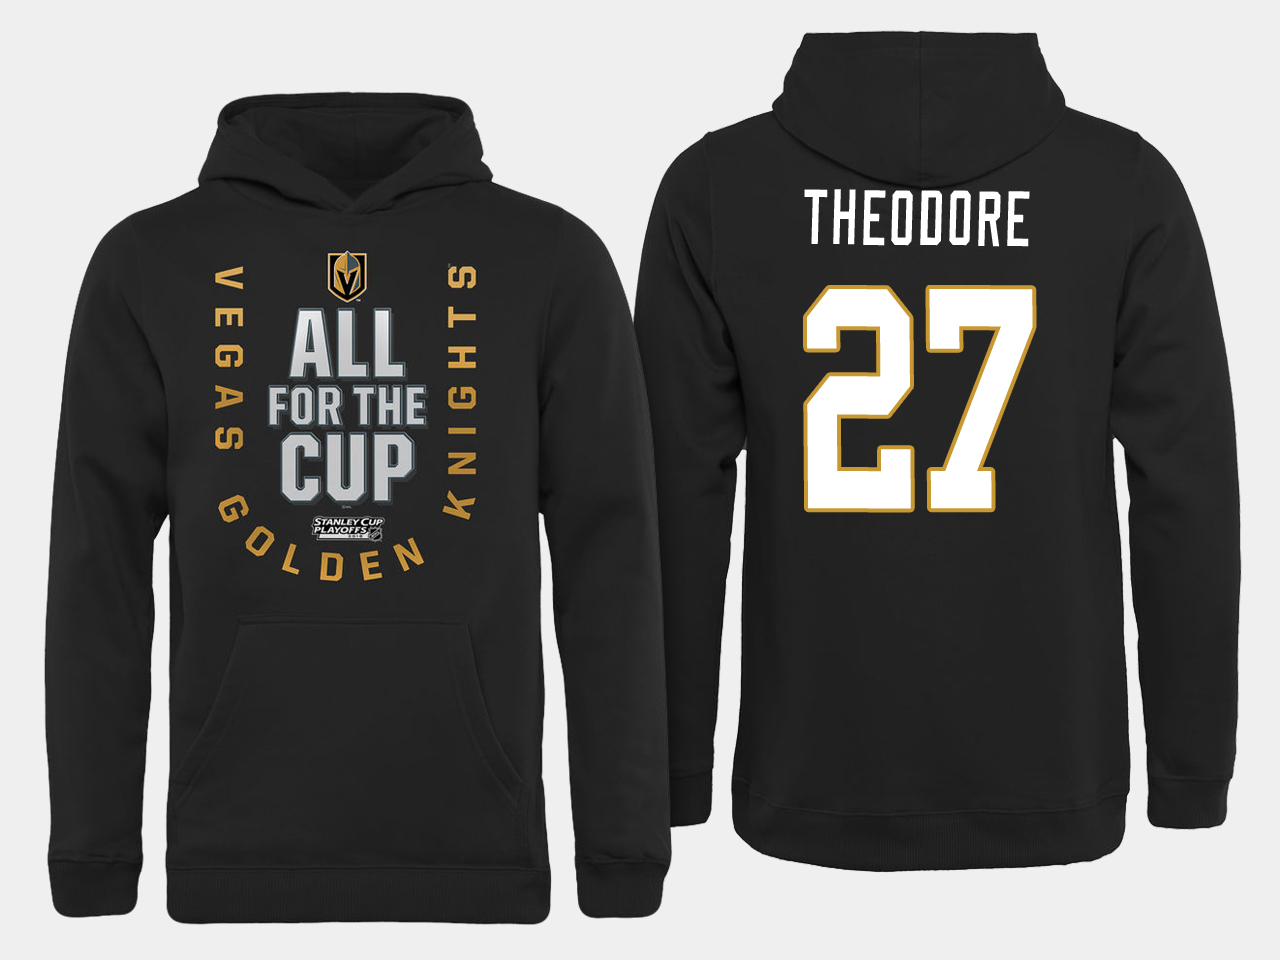 Men NHL Vegas Golden Knights 27 Theodore All for the Cup hoodie